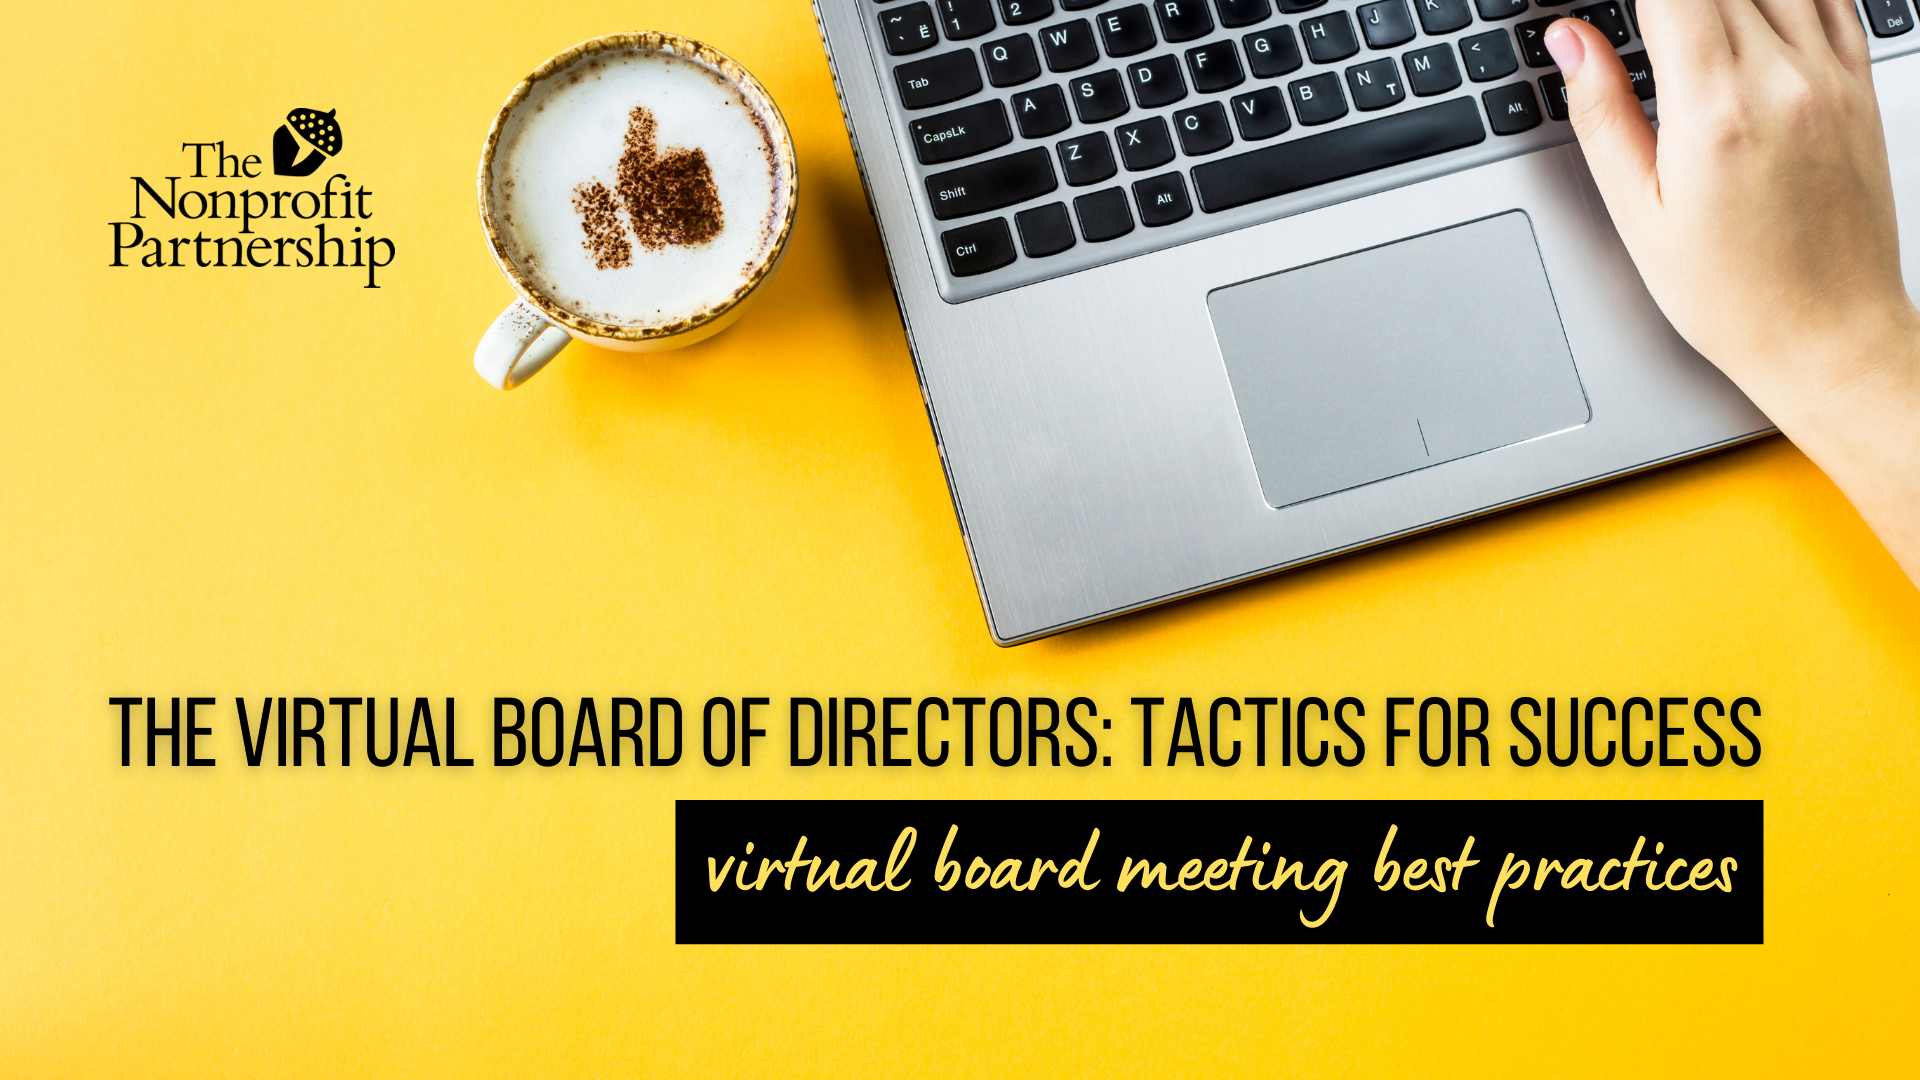 [Zoom Meeting] The Virtual Board of Directors: Tactics for Success - Virtual Board Meeting Best Practices